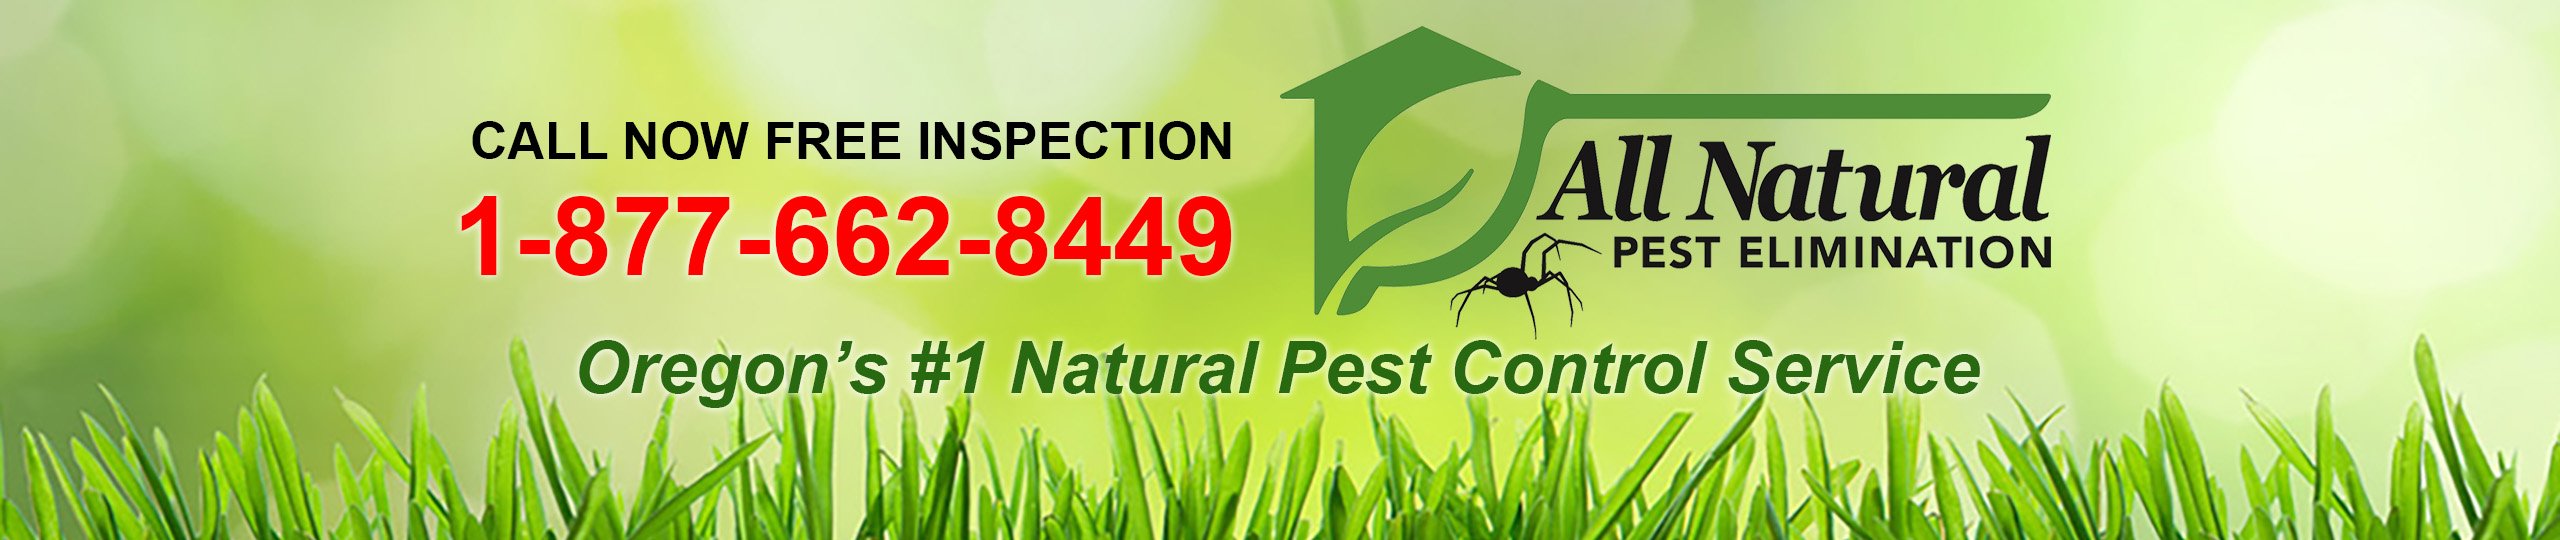 All Natural Pest Control of Oregon